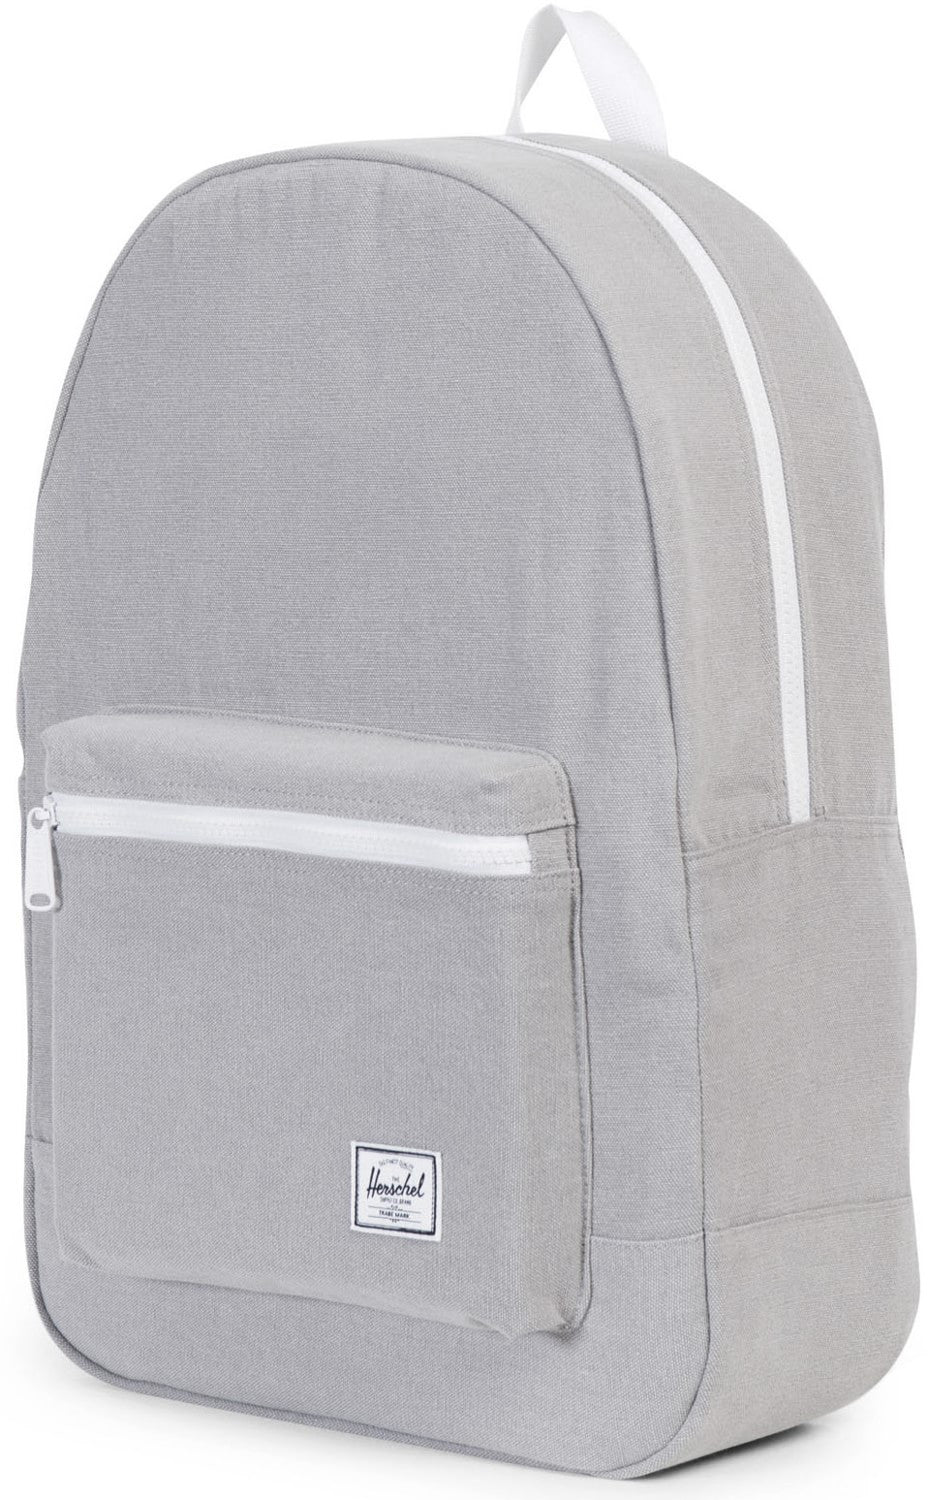 Herschel Supply Co. - Packable Daypack, Grey Canvas - The Giant Peach